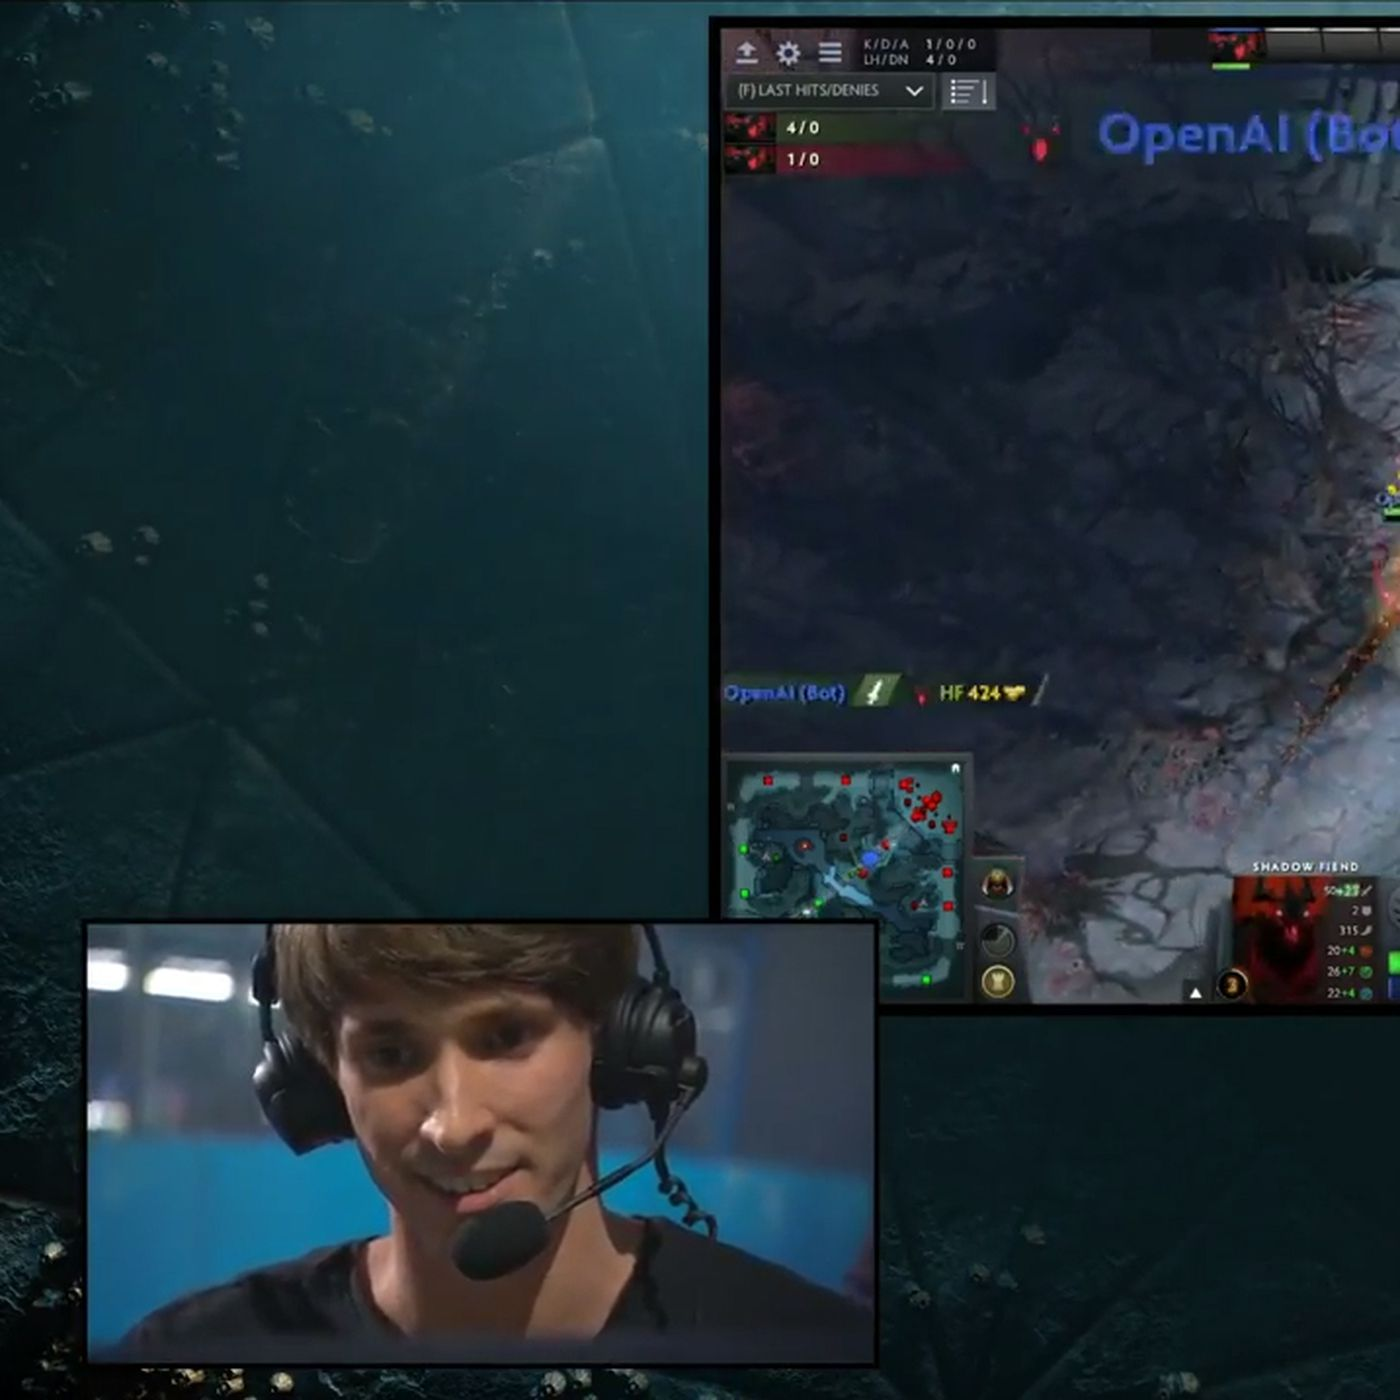 The World S Best Dota 2 Players Just Got Destroyed By A Killer Ai